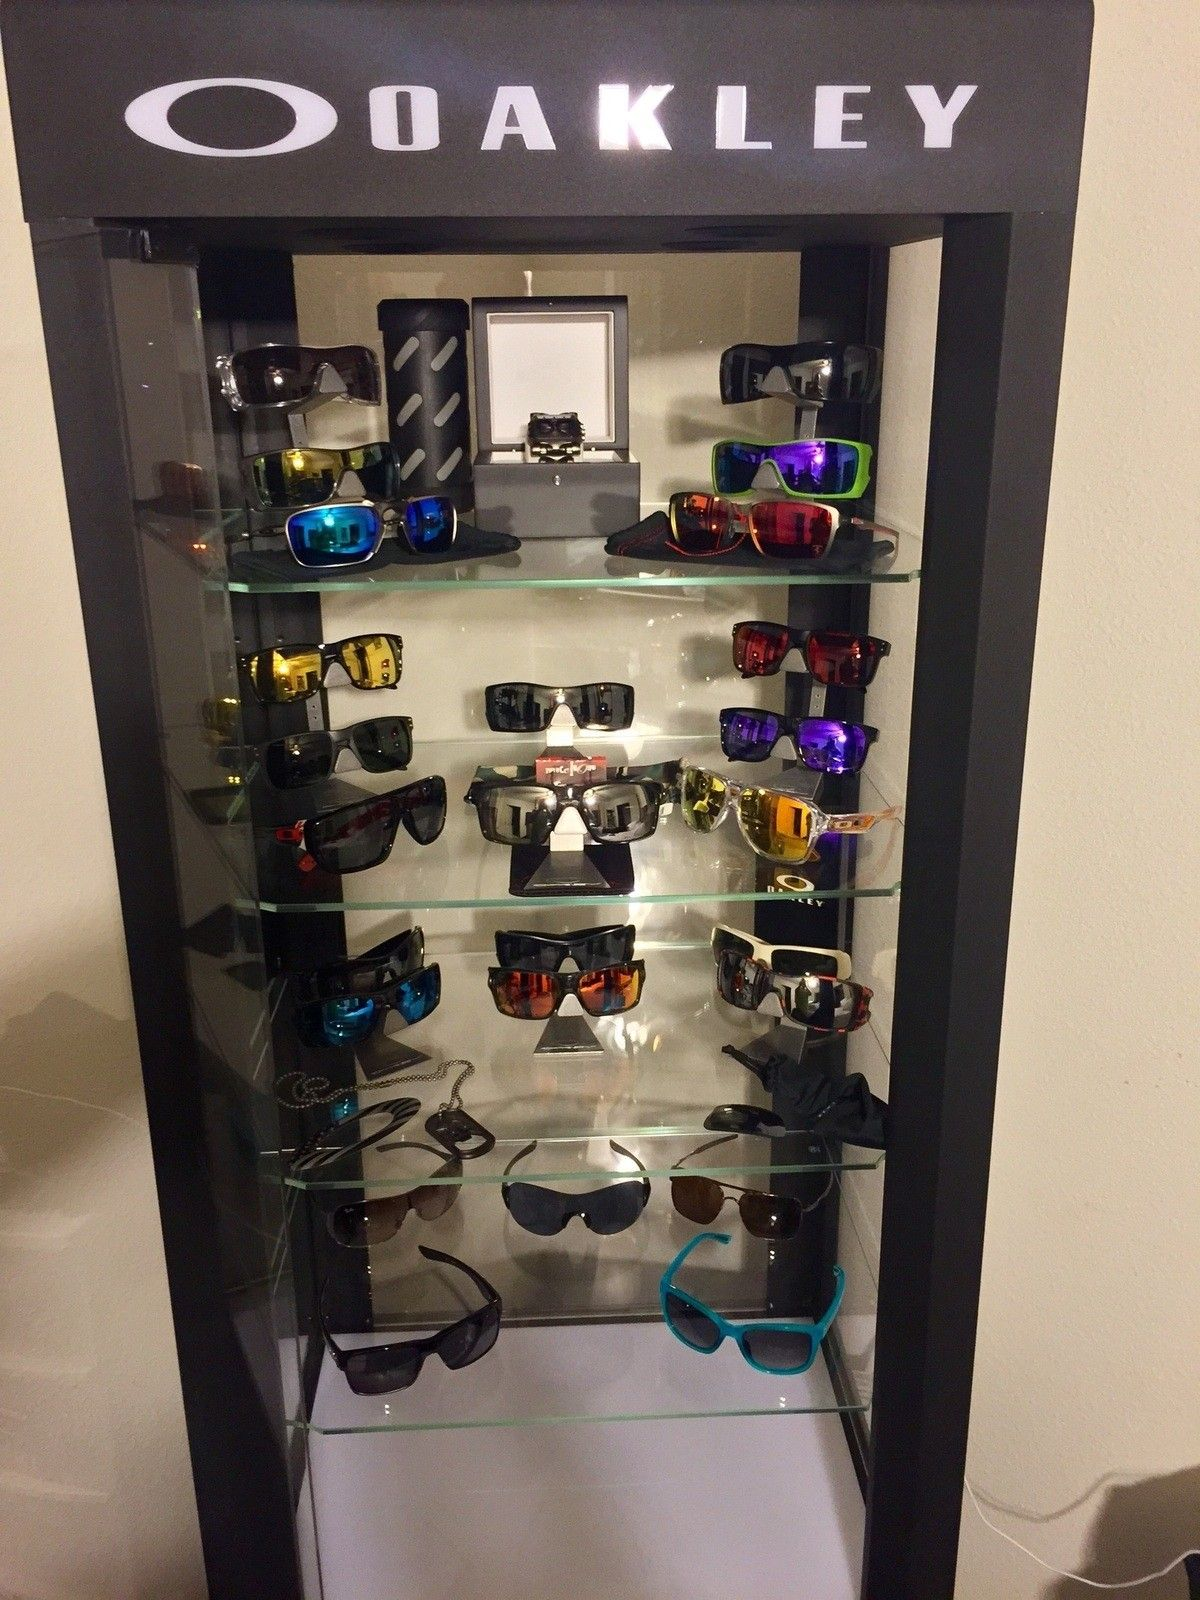 My collection - image.jpg